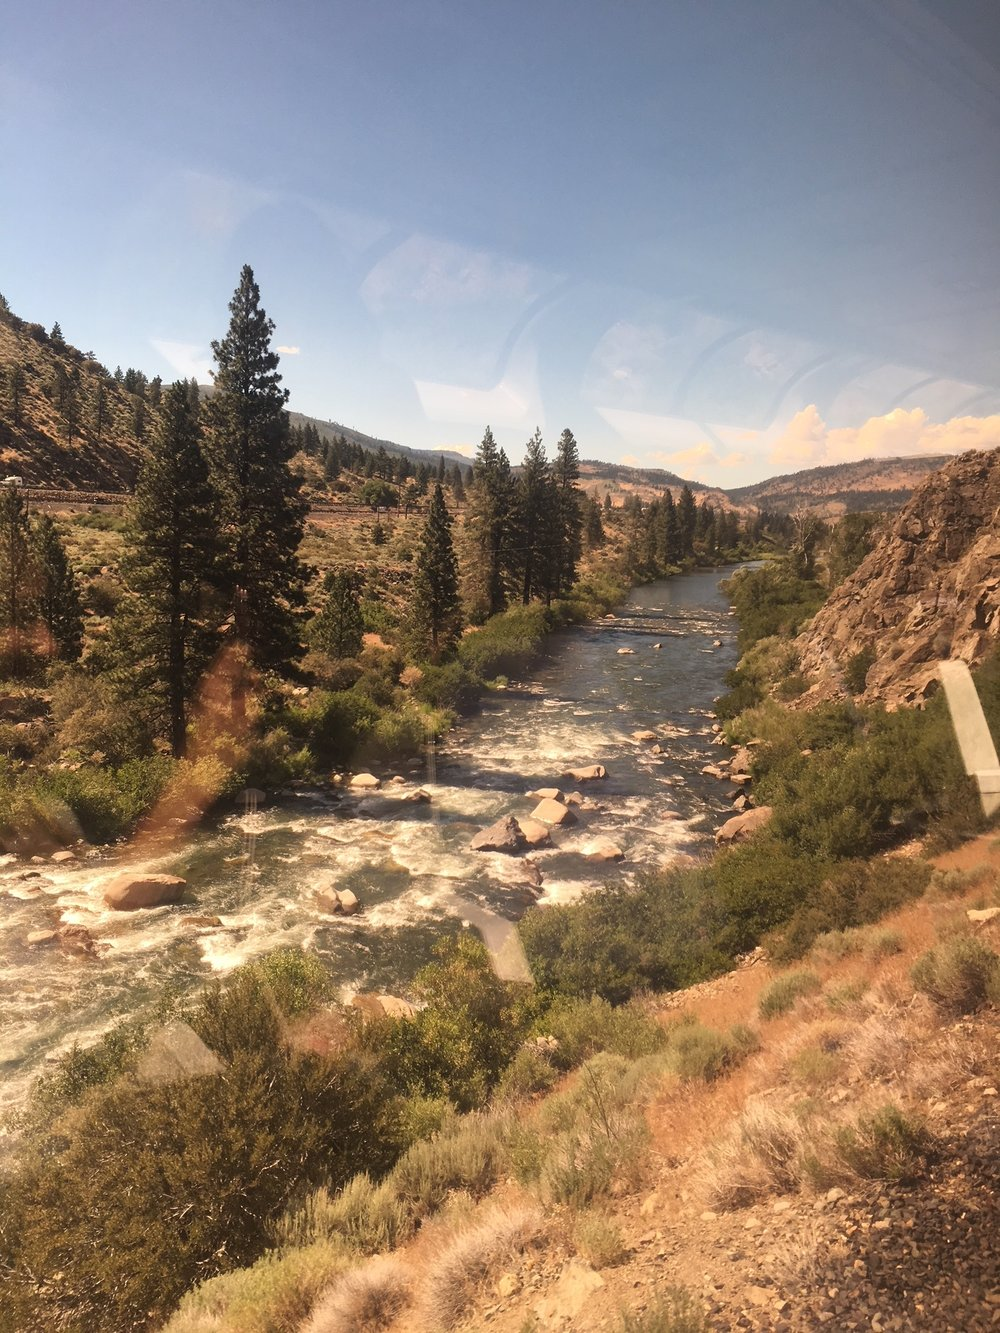 Truckee River from the observation car